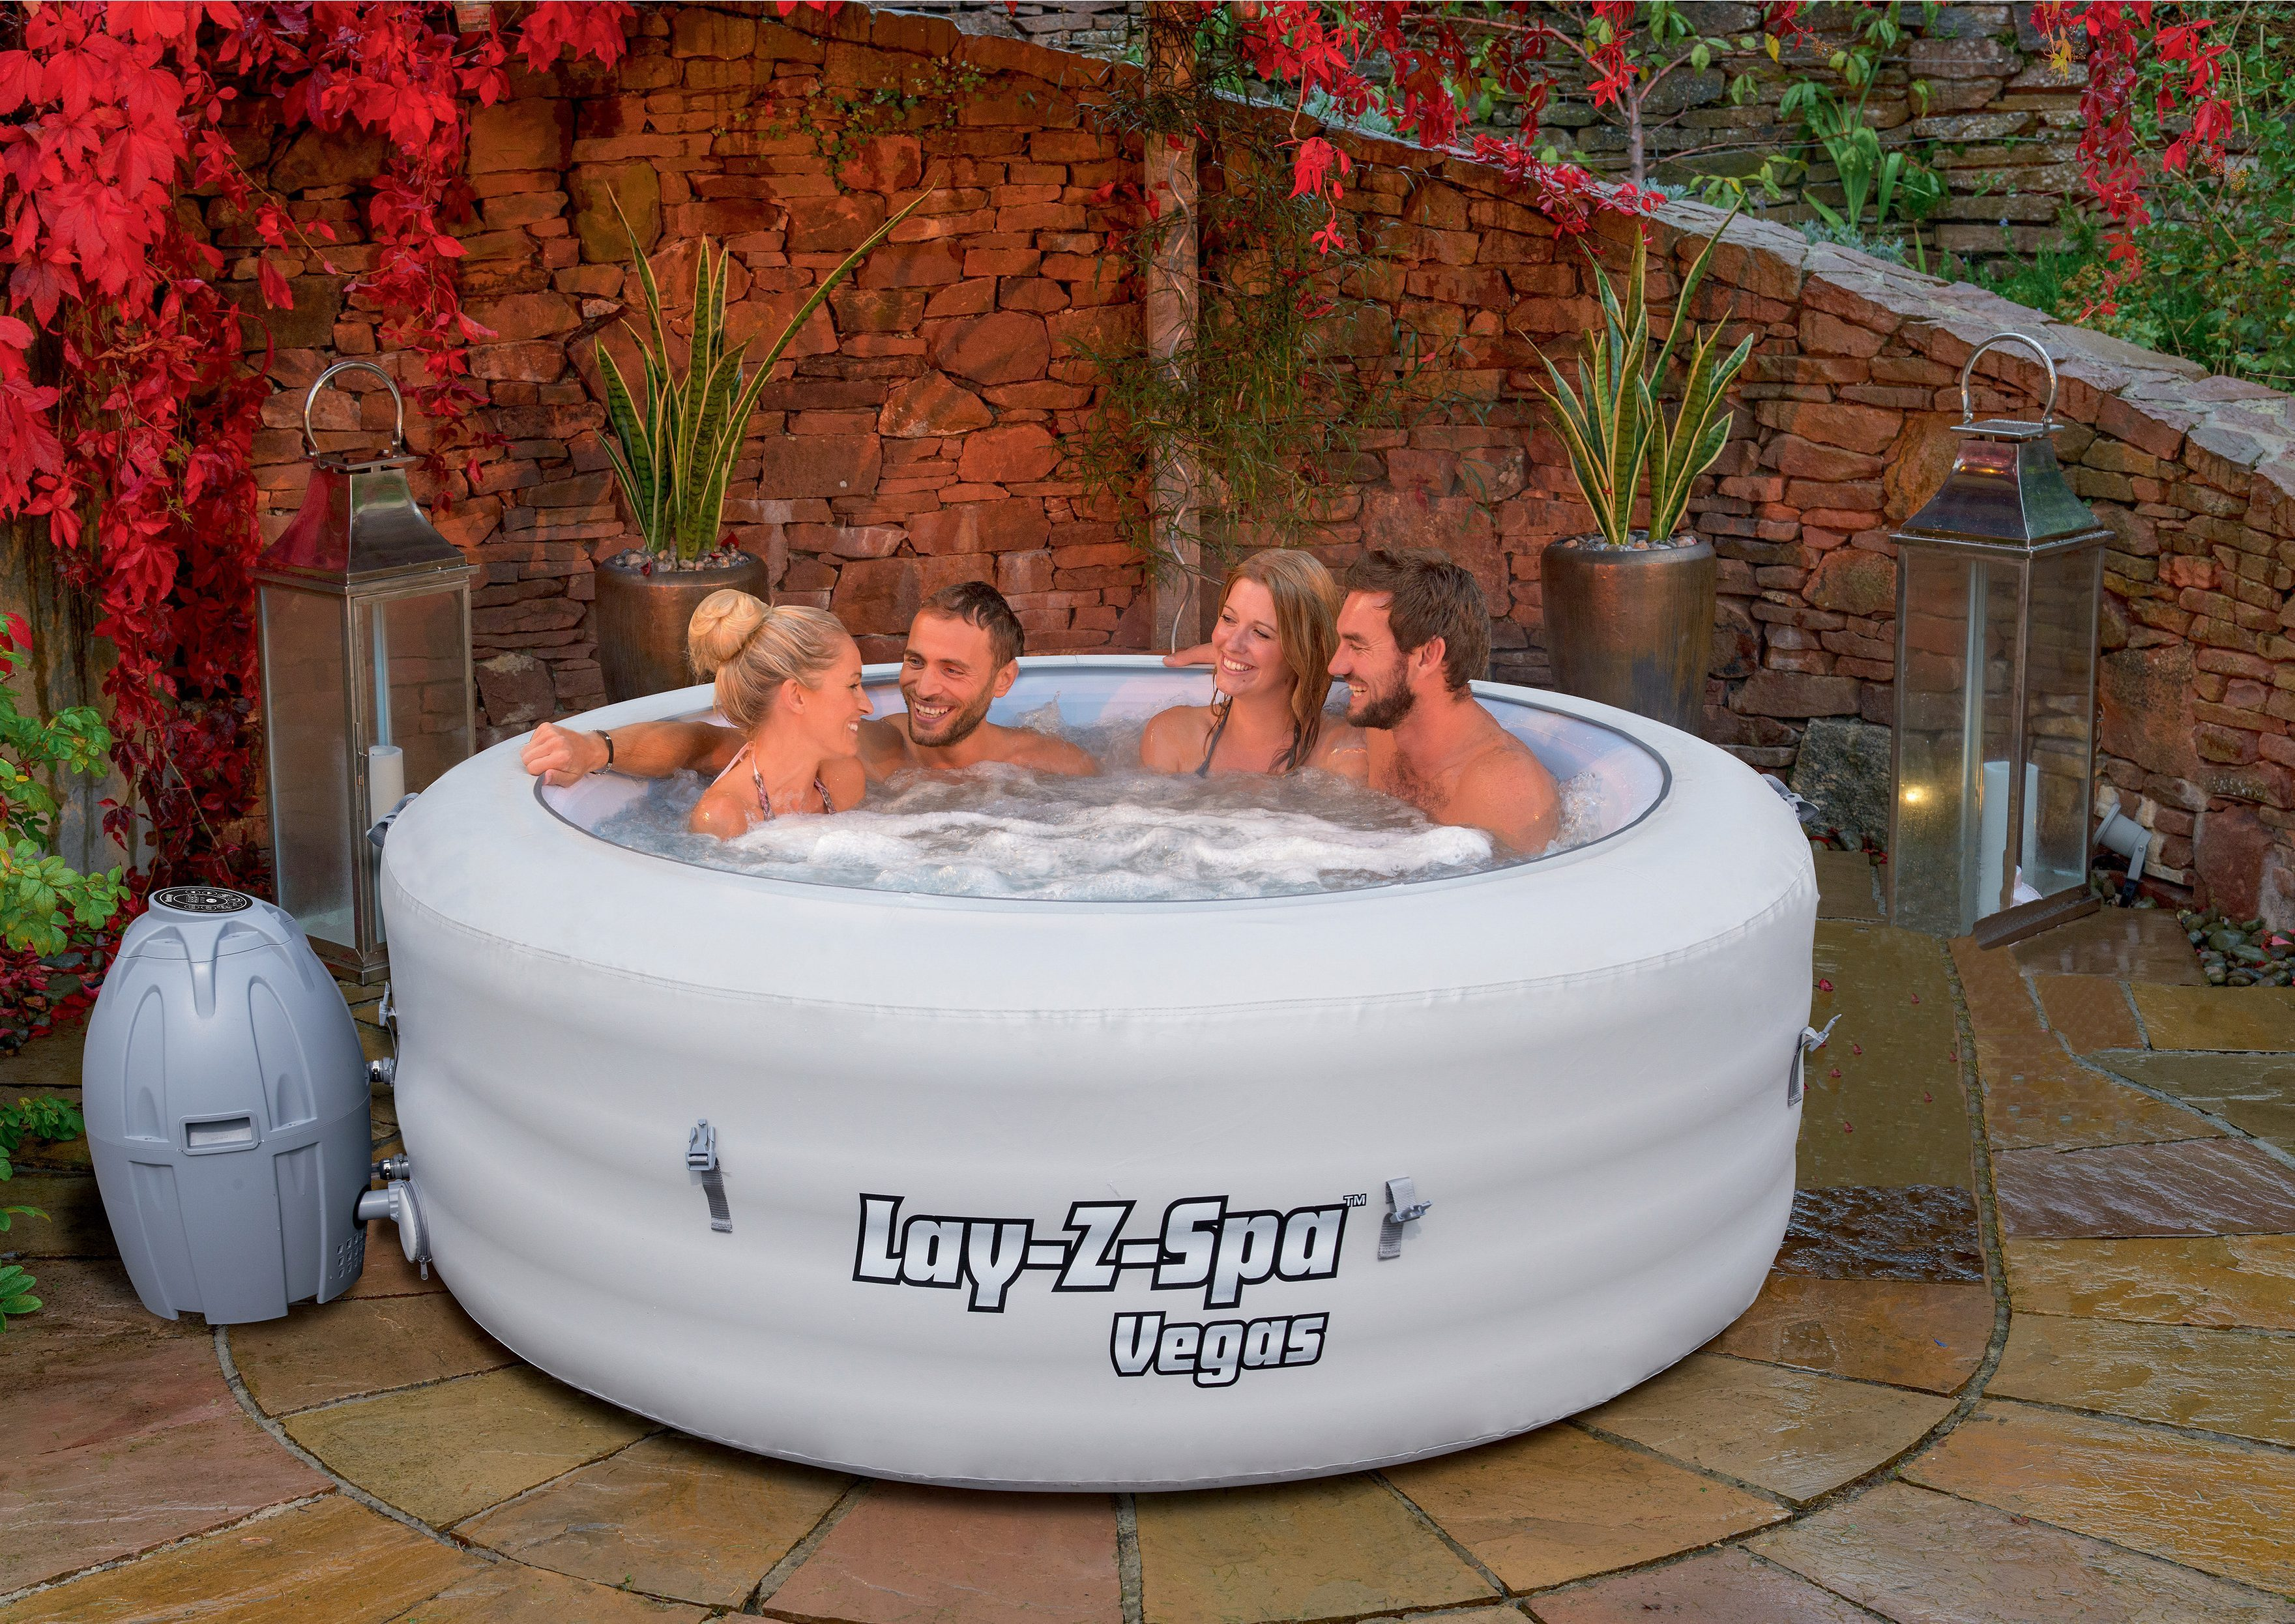 B&M slashes price of sell-out hot tubs by £50